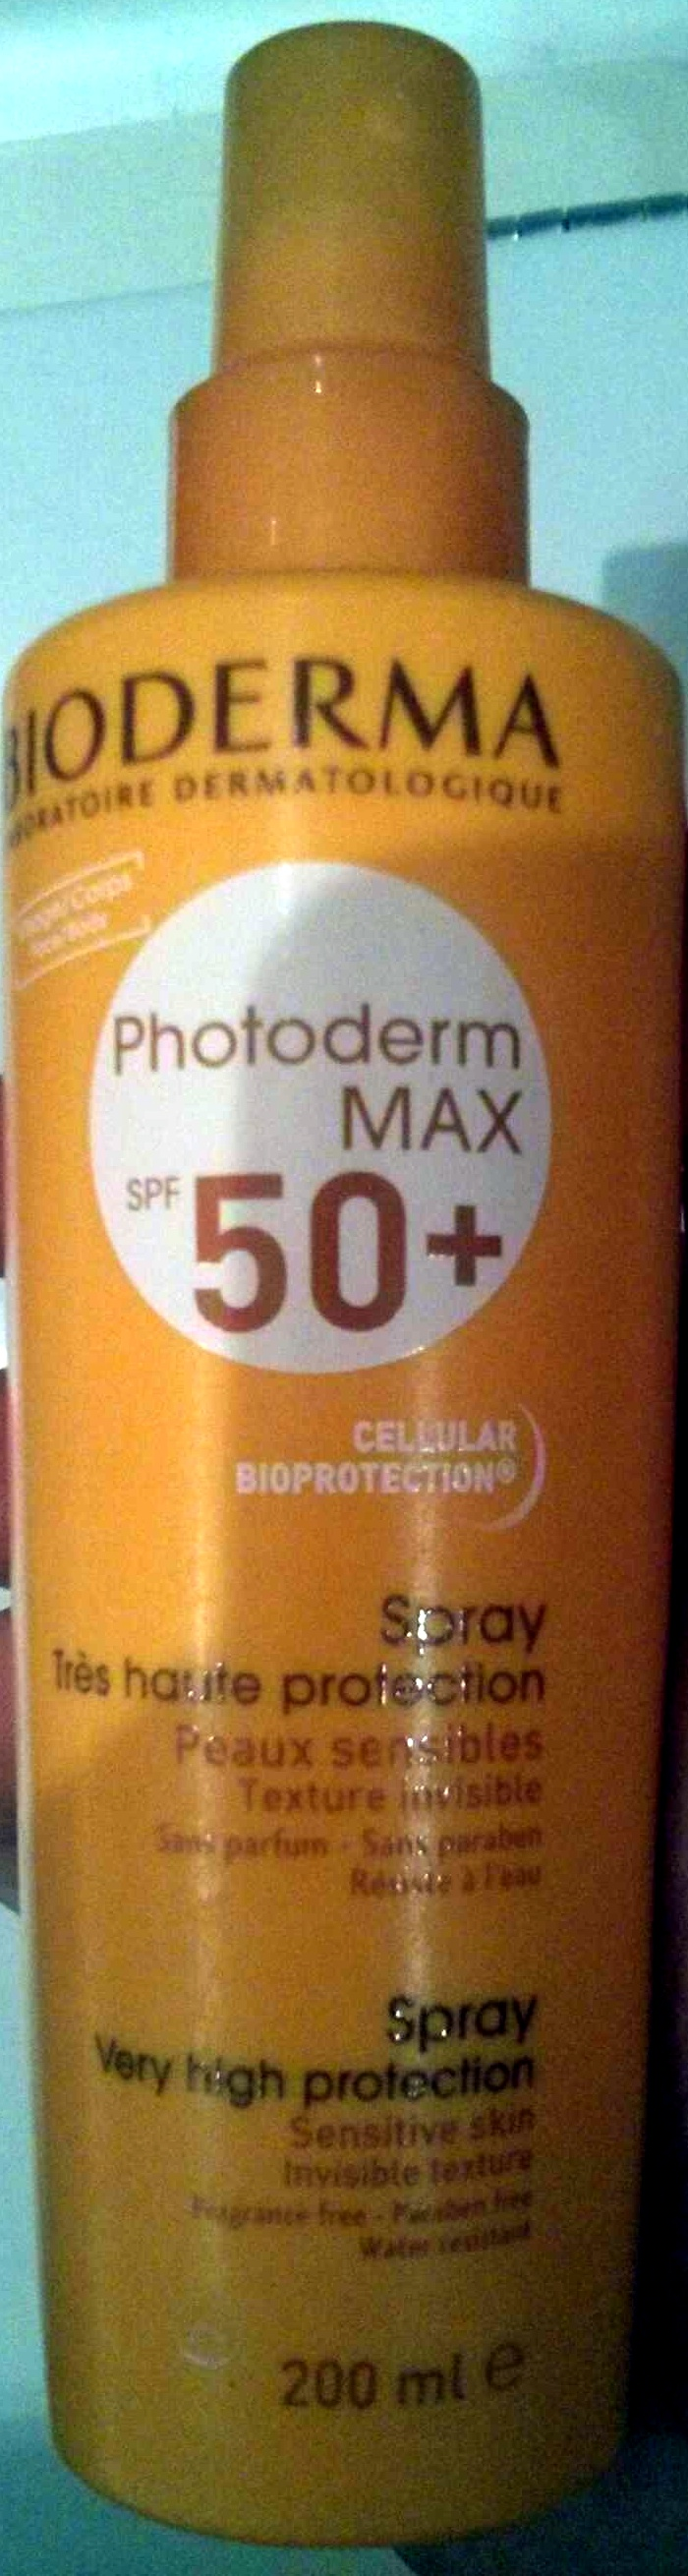 Photoderm MAX SPF 50+ Spray très haute protection - Product - en